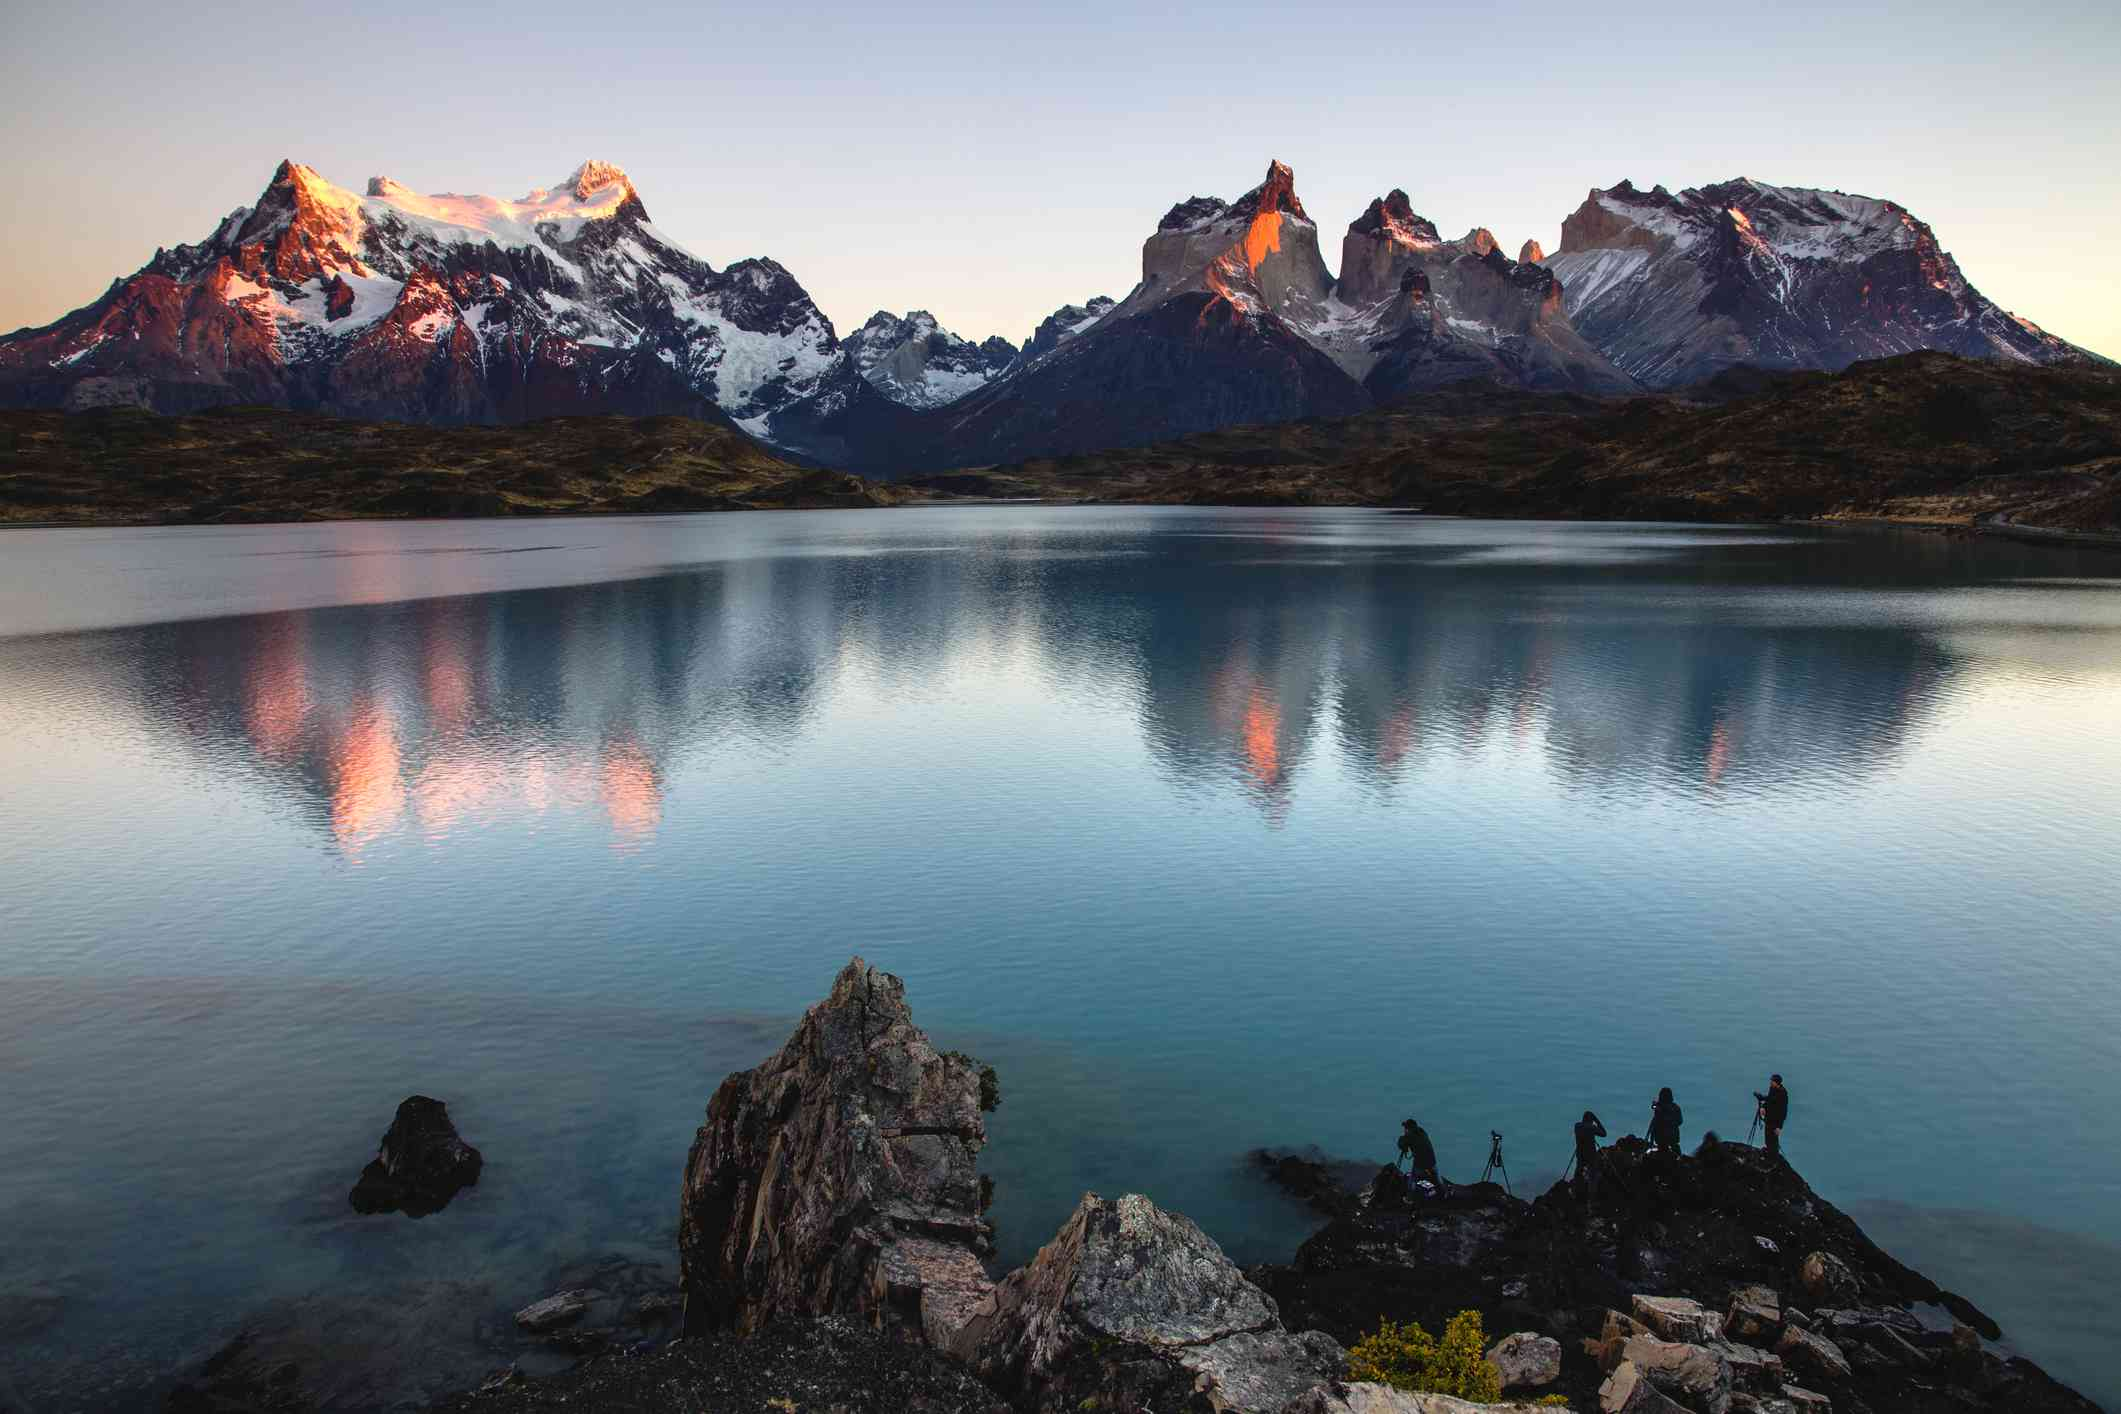 The majestic peaks and spires of Torres del Paine reflected on a blue lake at dawn, Torres del Paine, Chile, South America.